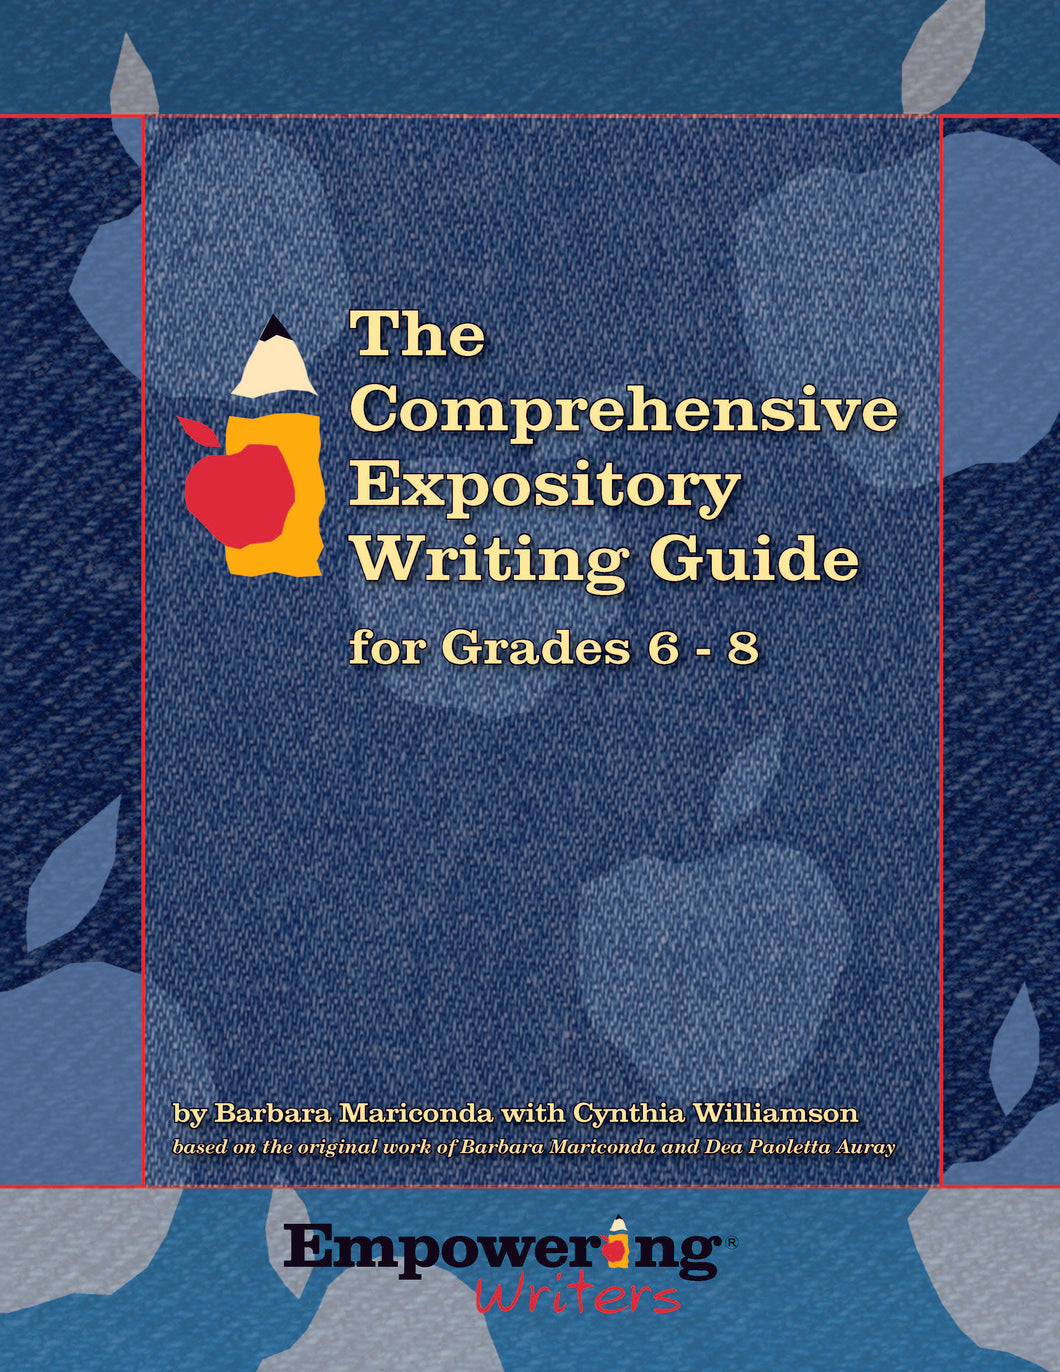 Comprehensive Expository Writing Guide for Grades 6-8